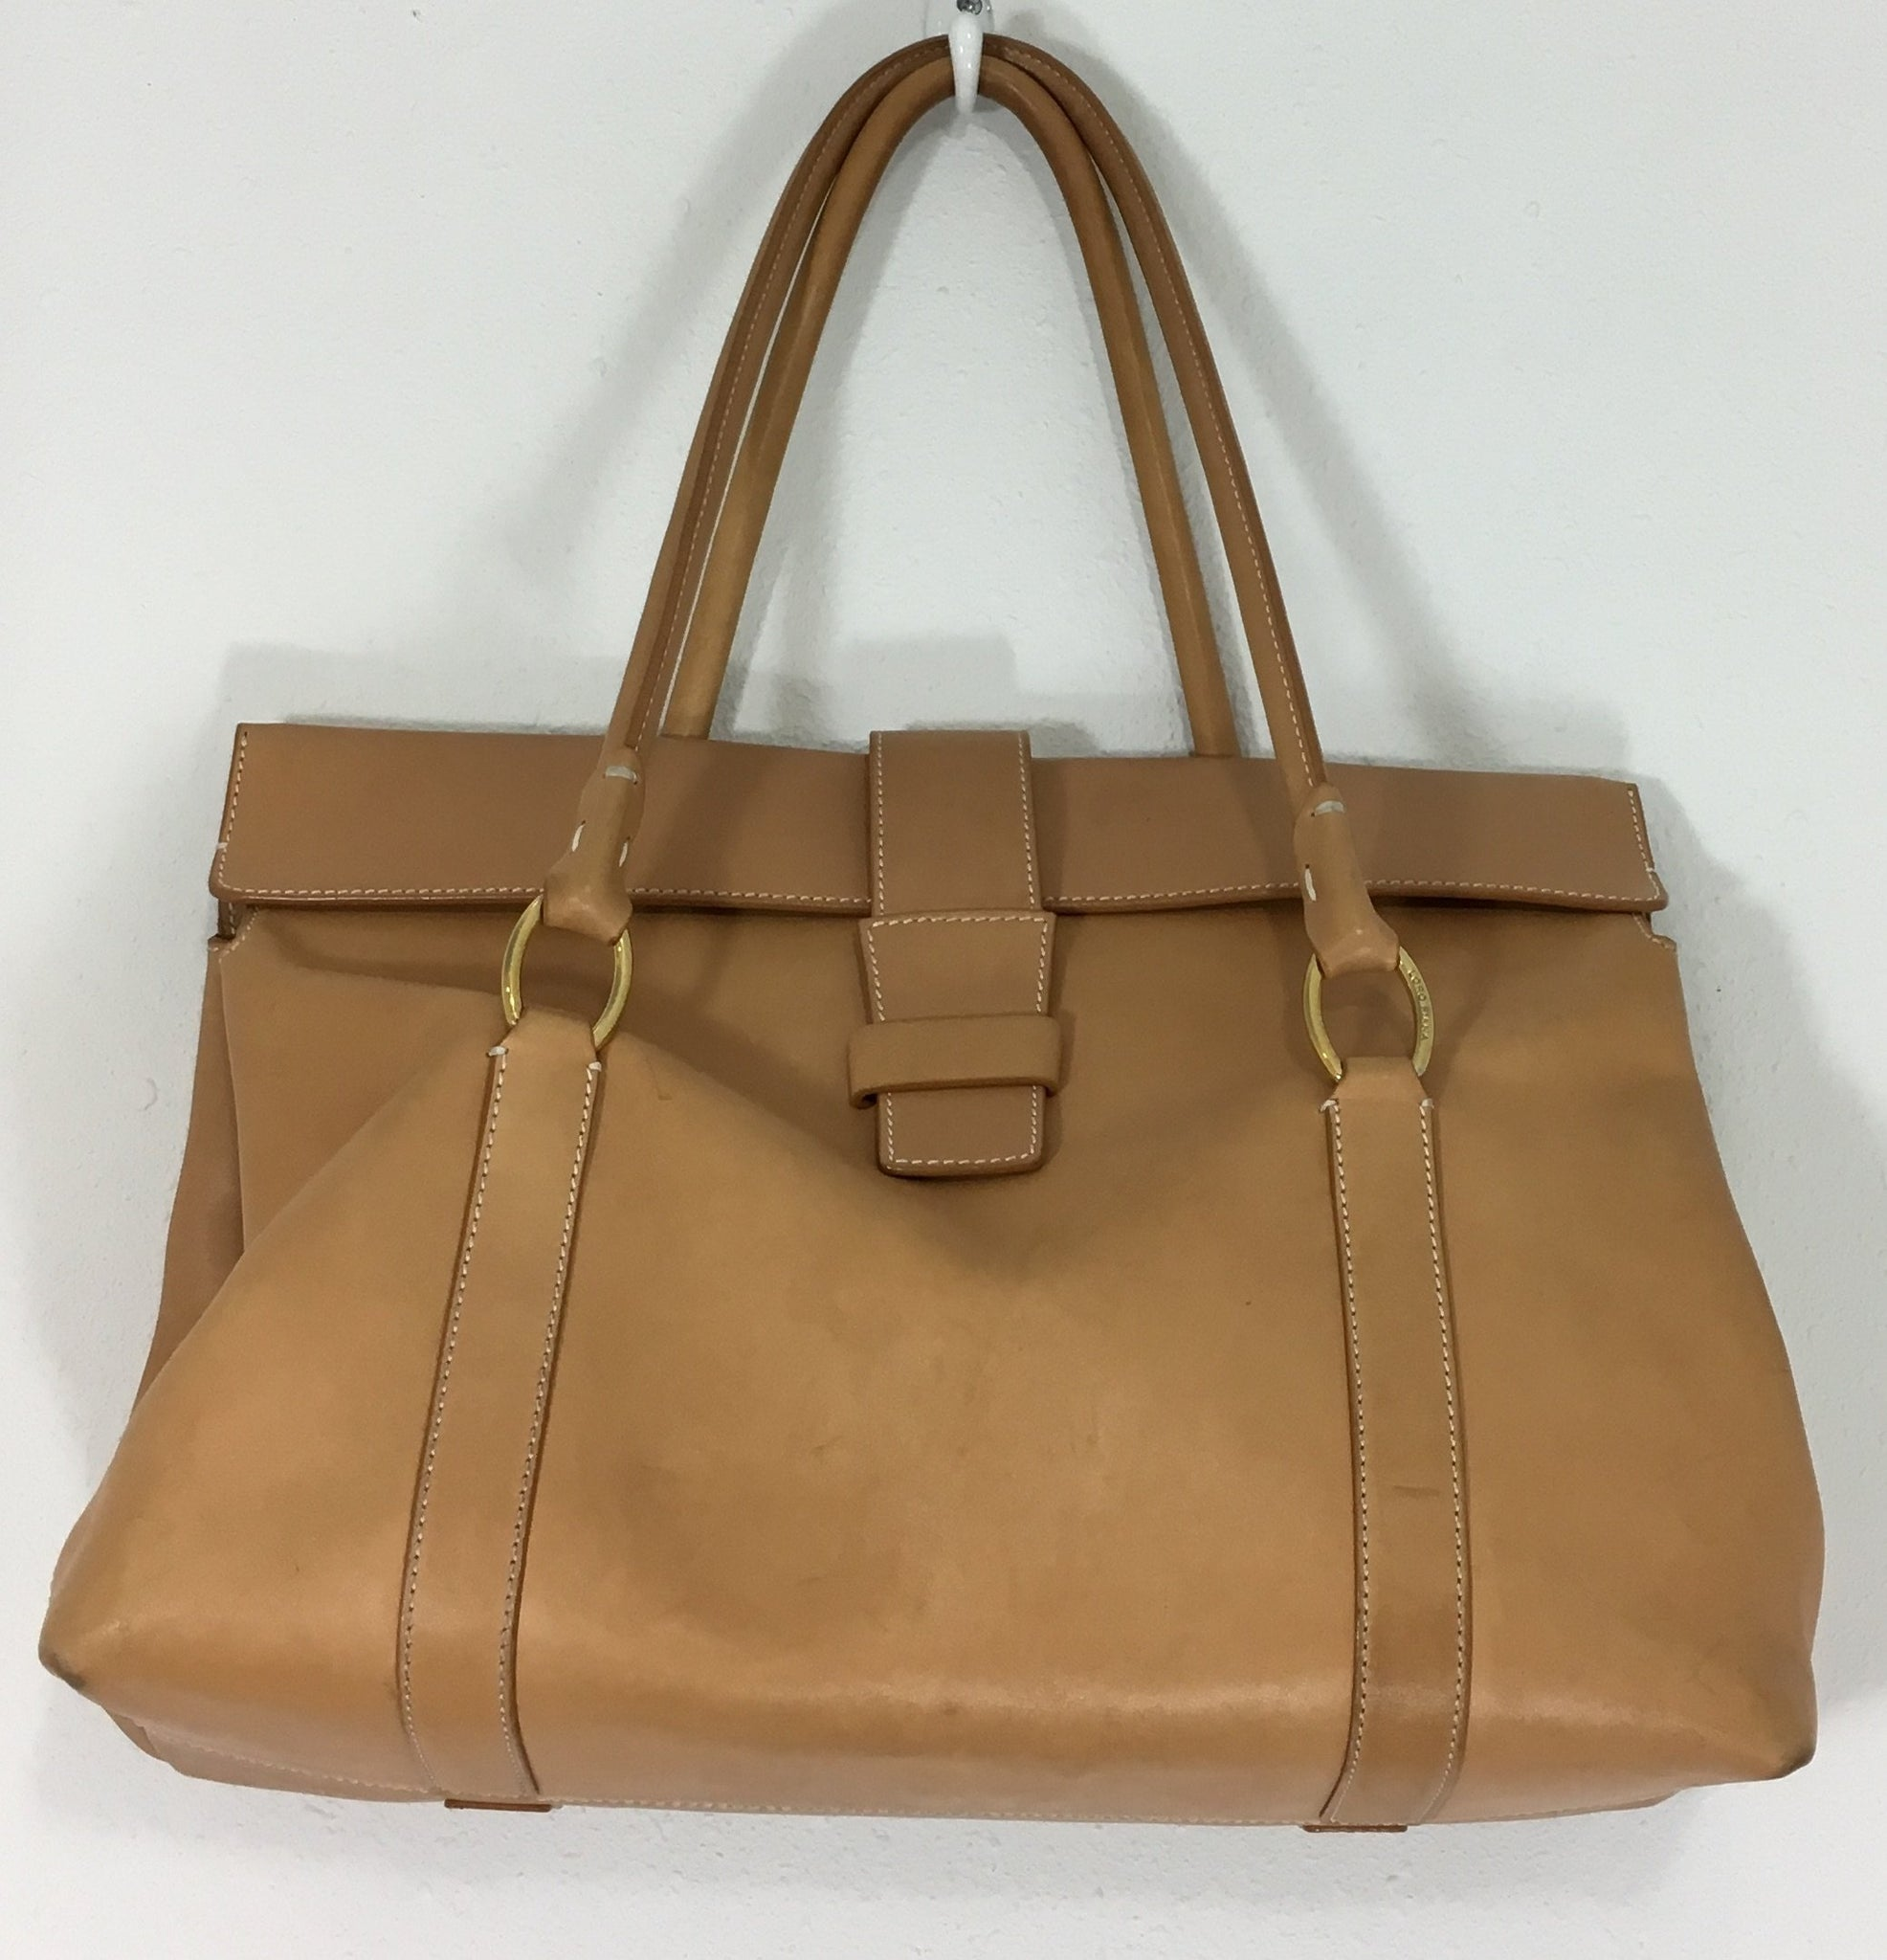 Pre-Owned Loro Piana Handbag, SOLD